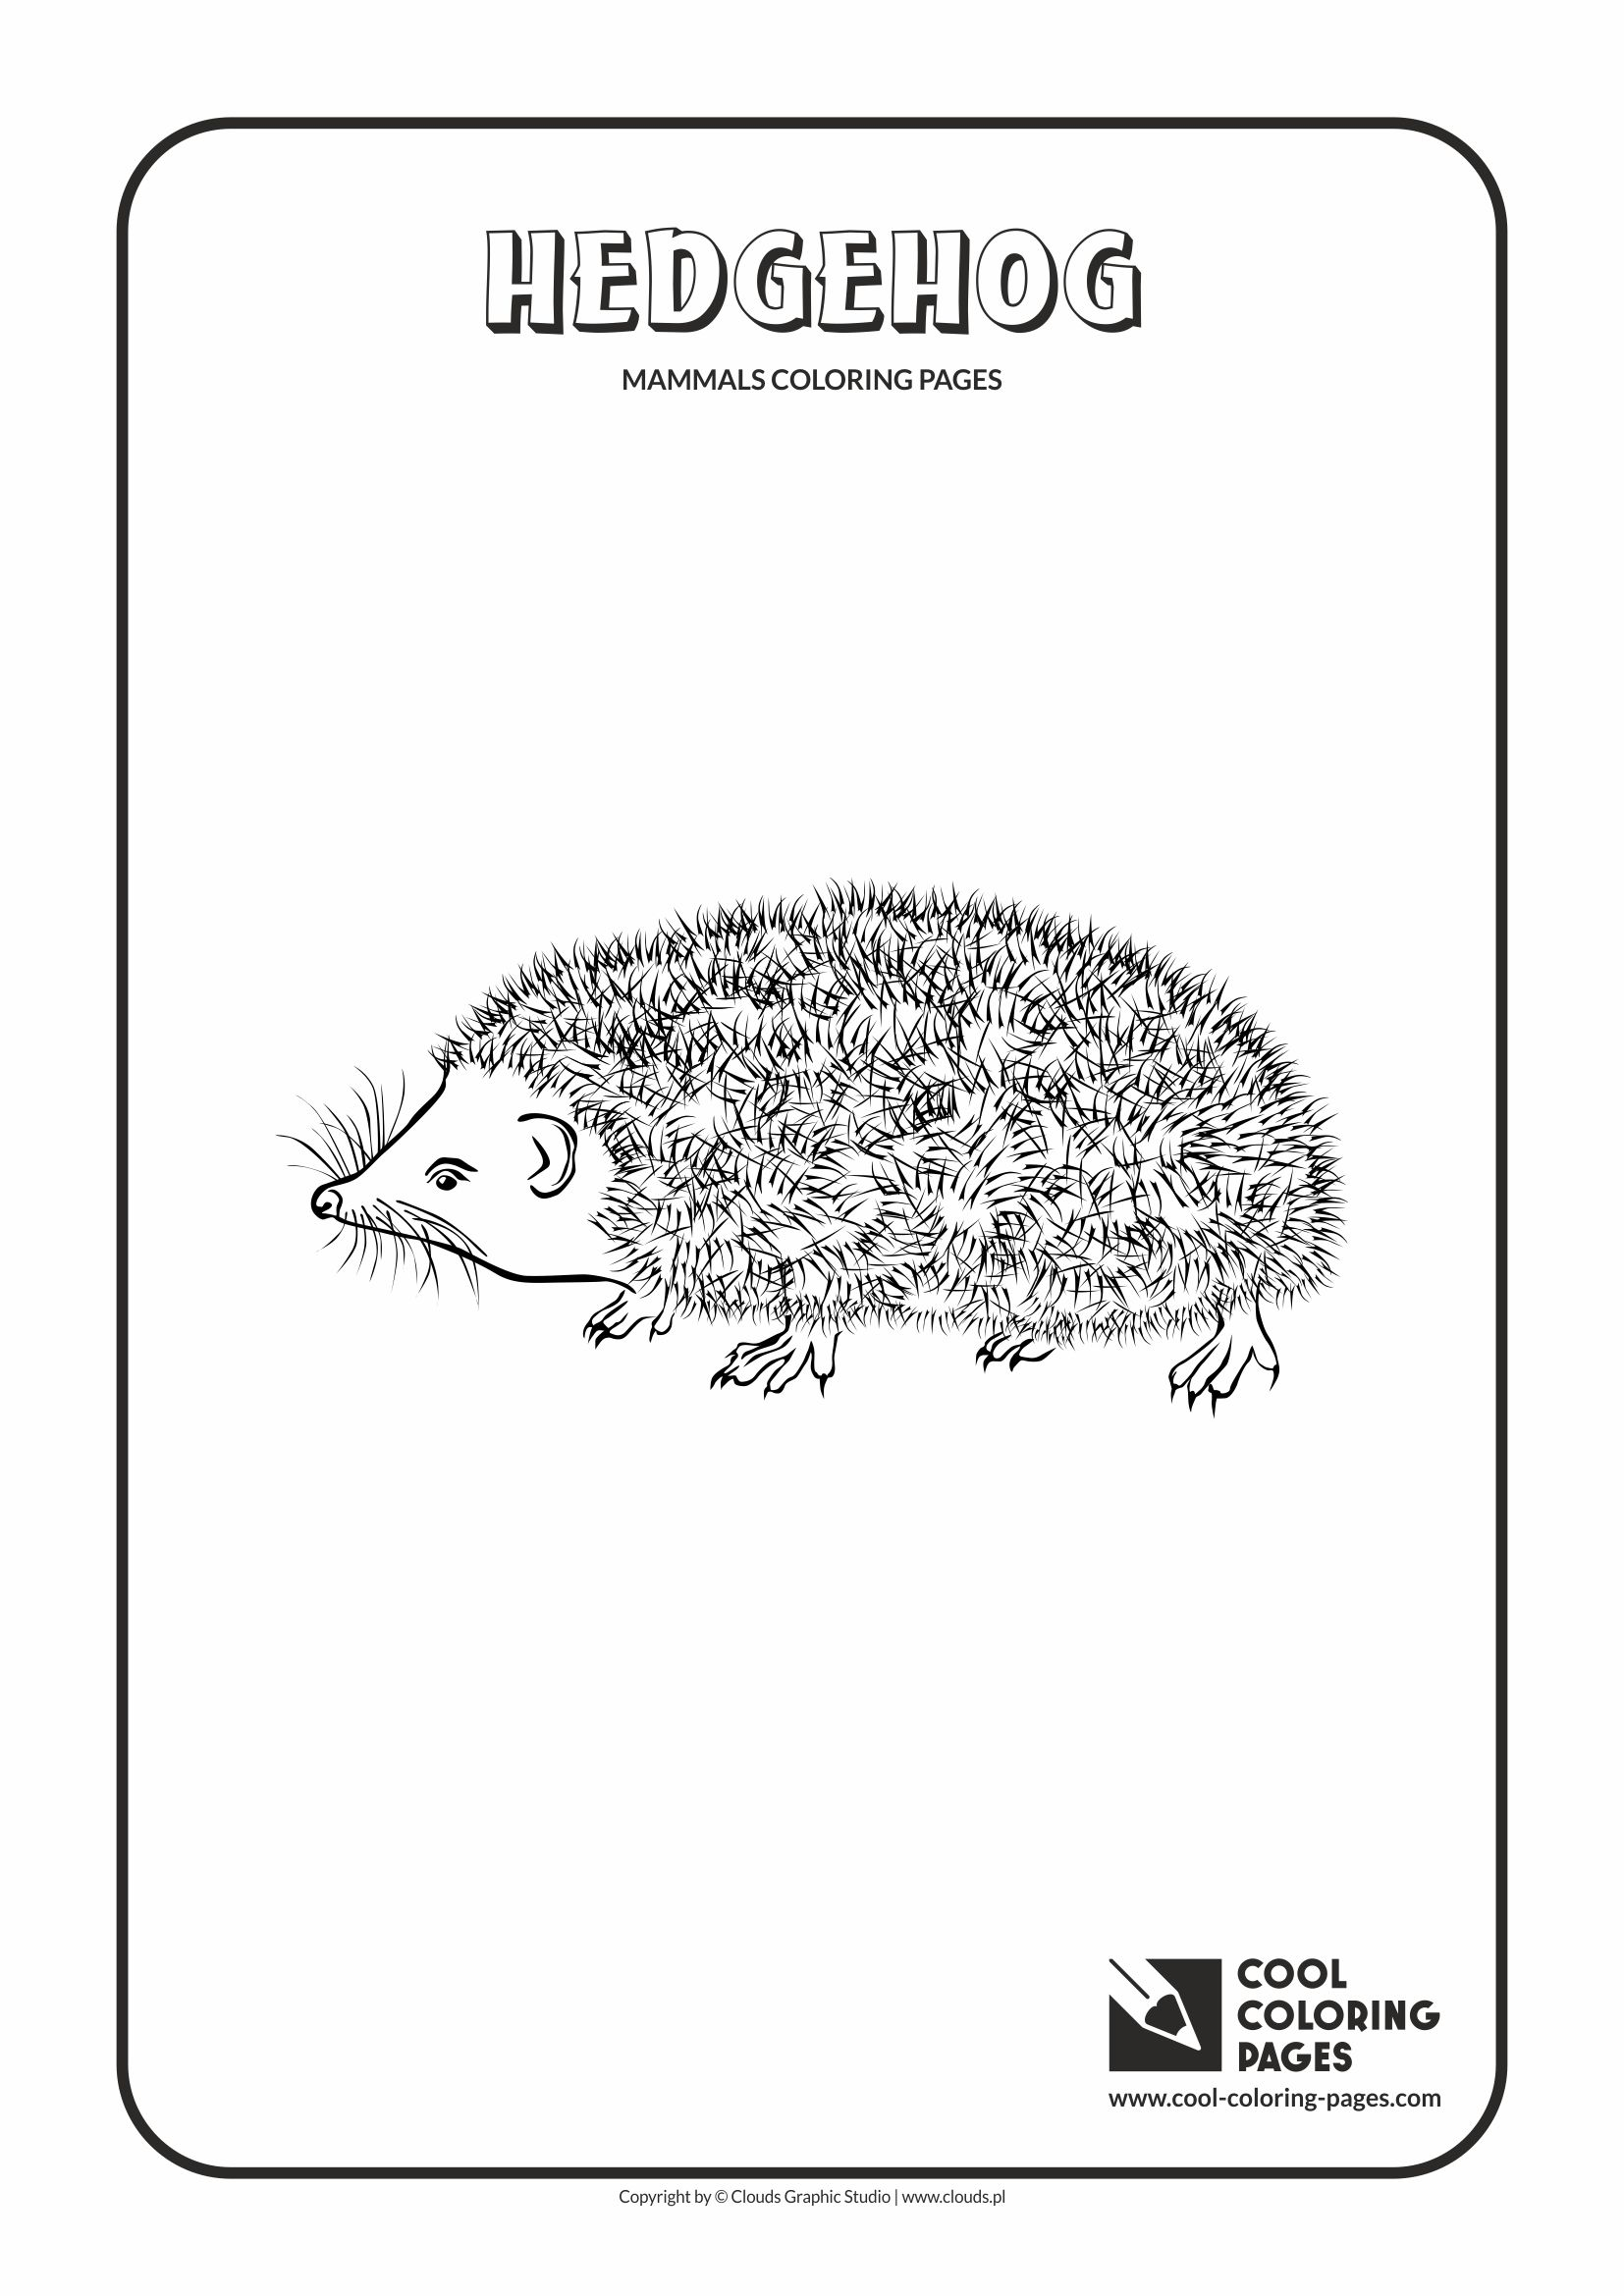 Cool Coloring Pages - Animals / Hedgehog / Coloring page with hedgehog